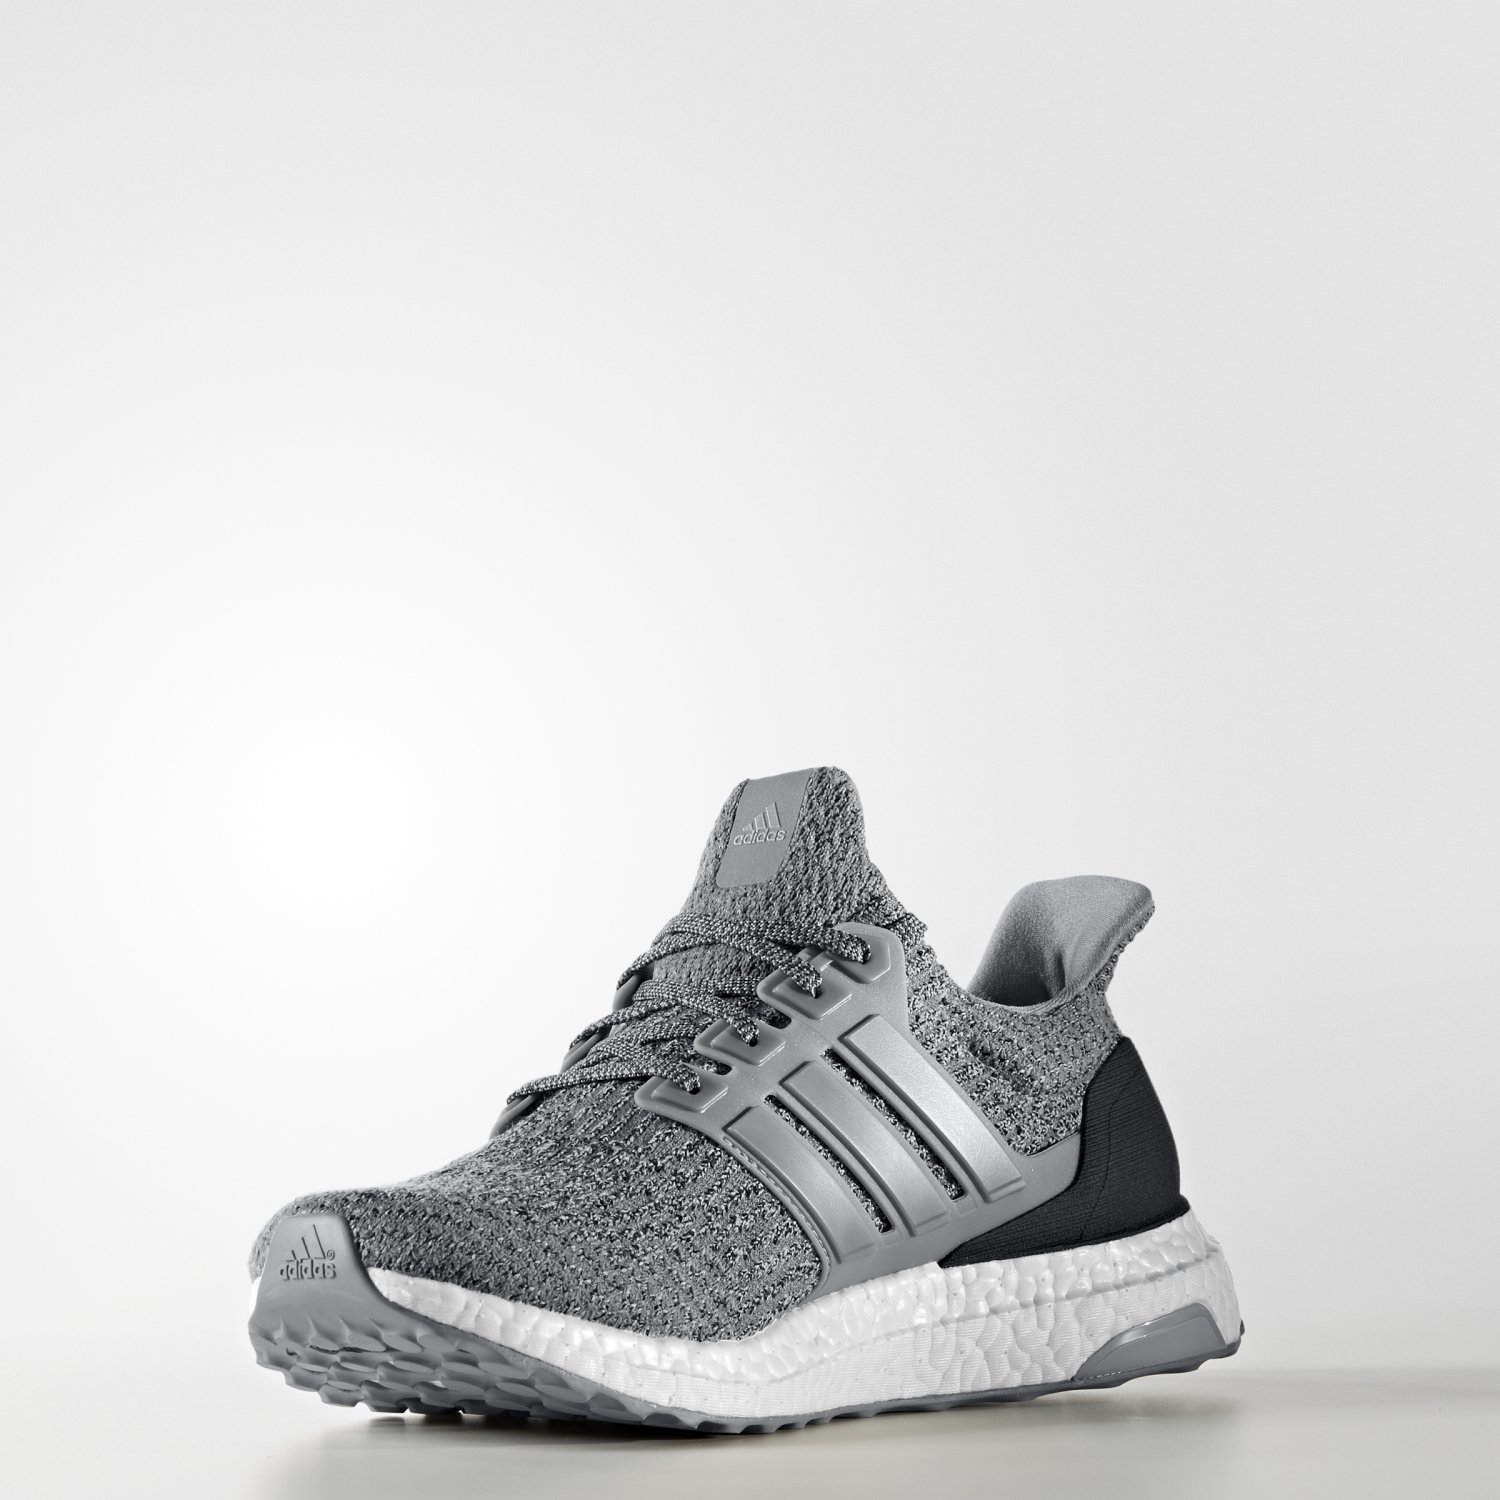 adidas-ultra-boost-wool-s82023-release-20170922